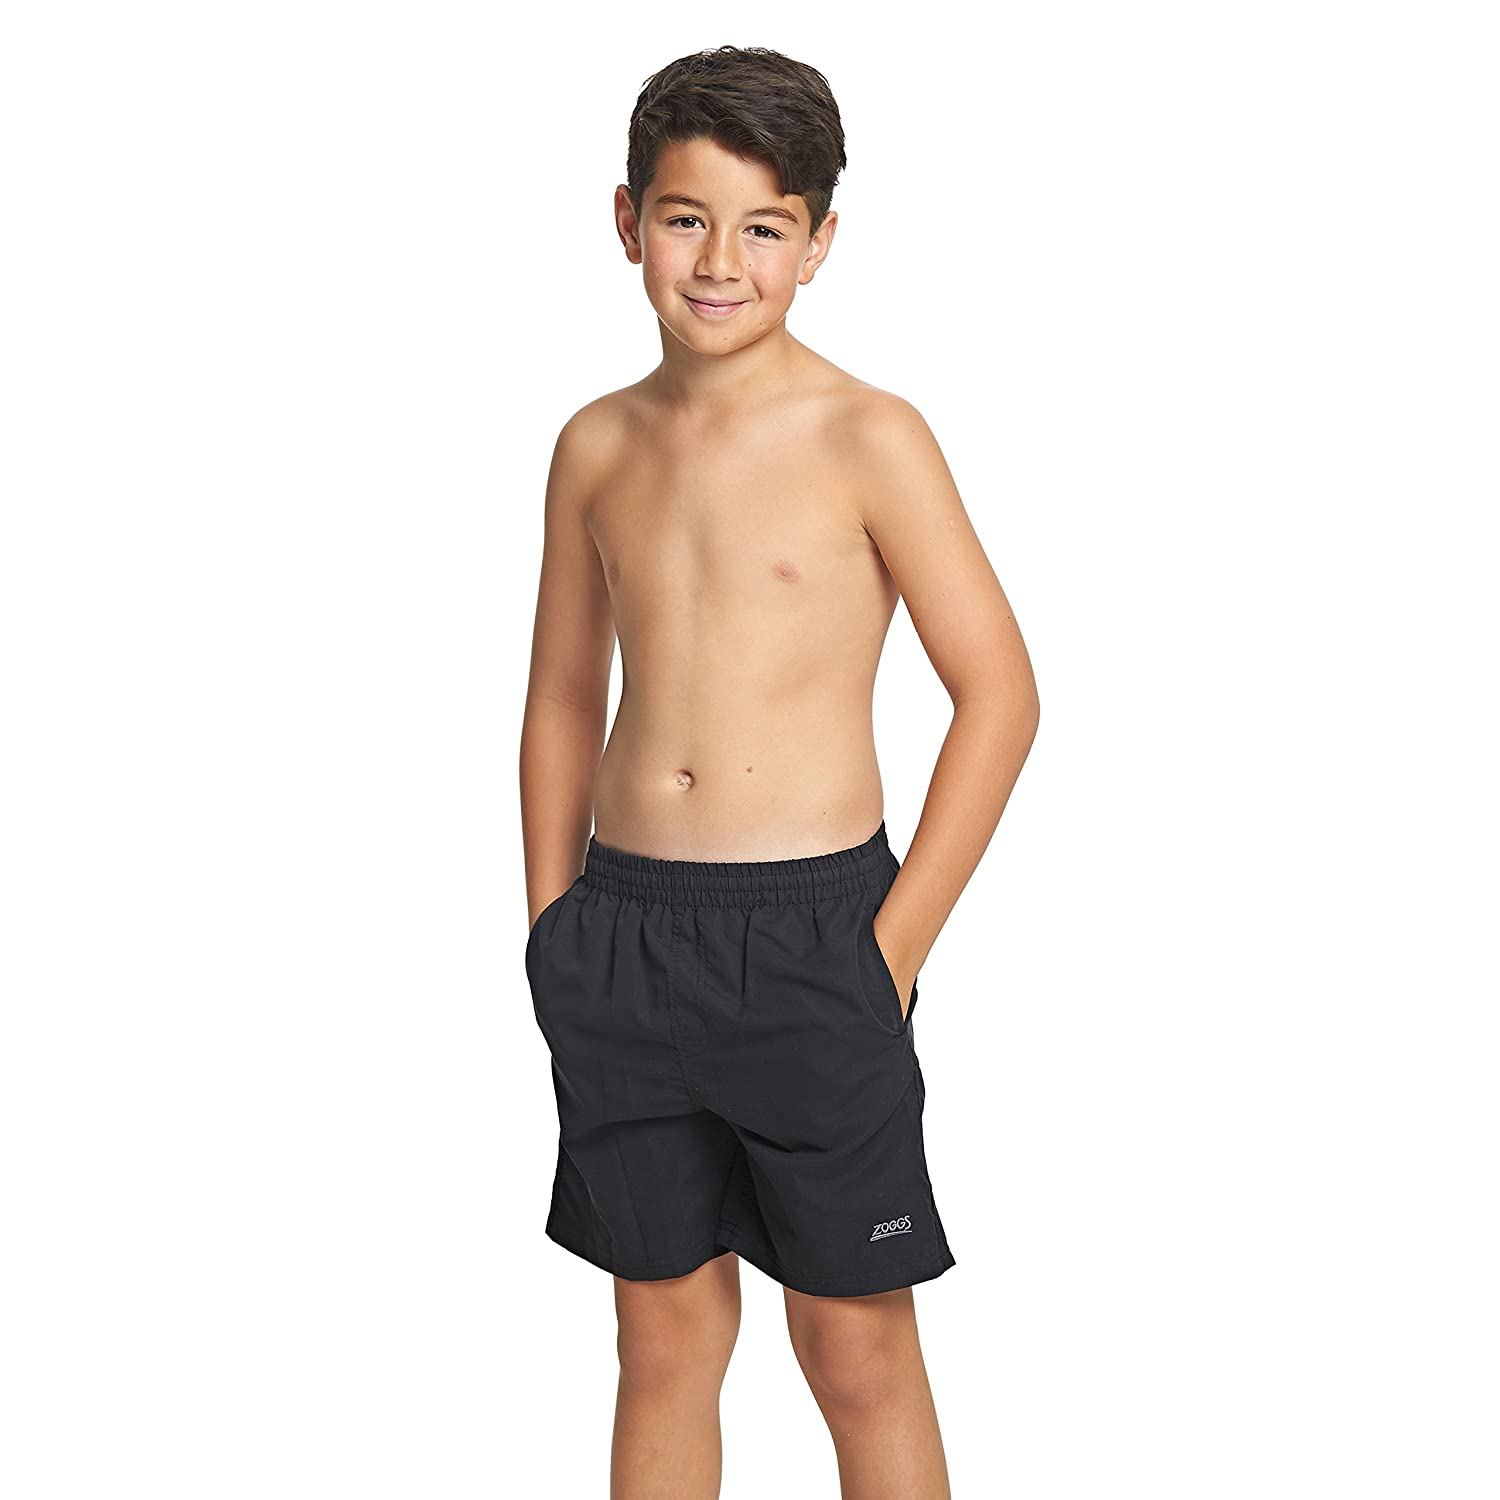 Zoggs Penrith Kids Swim Shorts Large Black 6566001